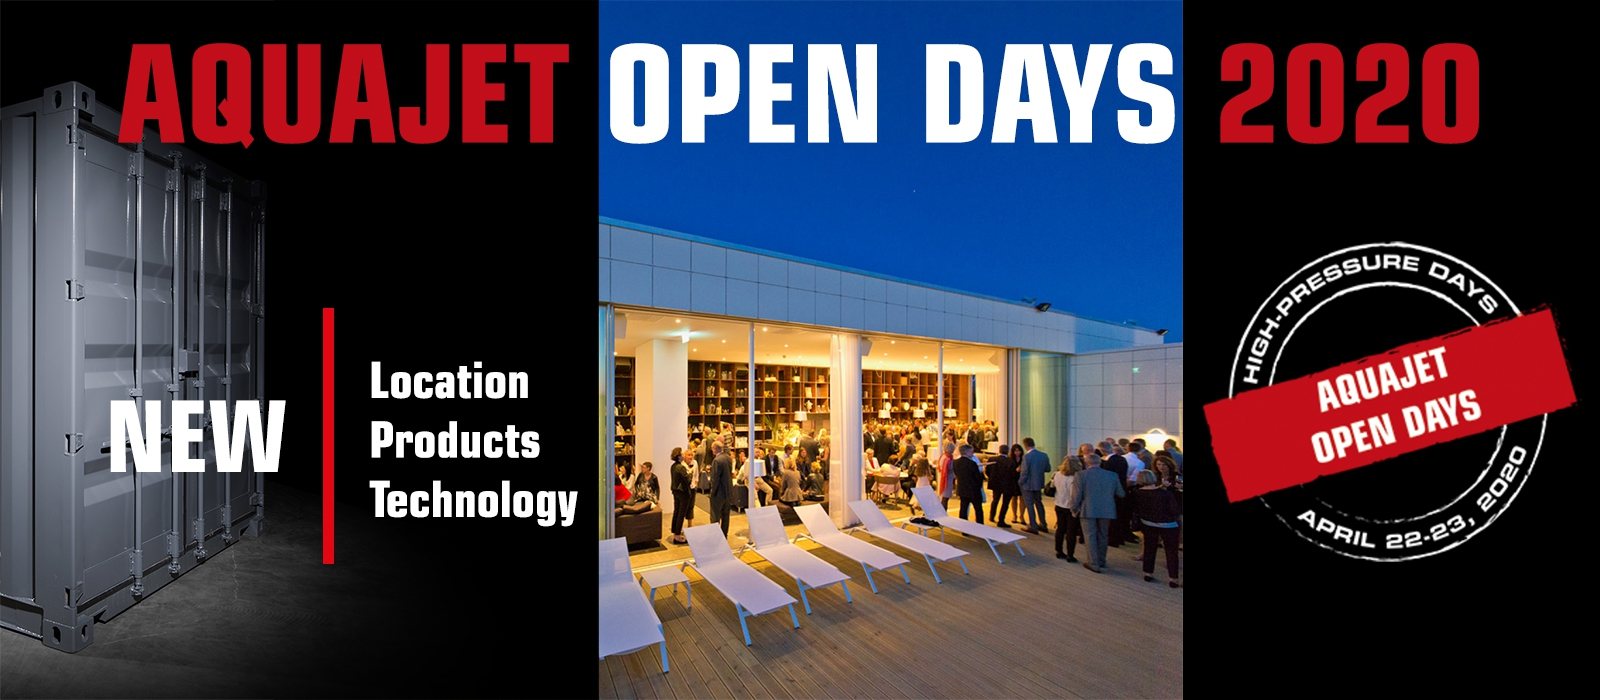 aquajet open days 2020 hydrodemolition industrial cleaning high pressure